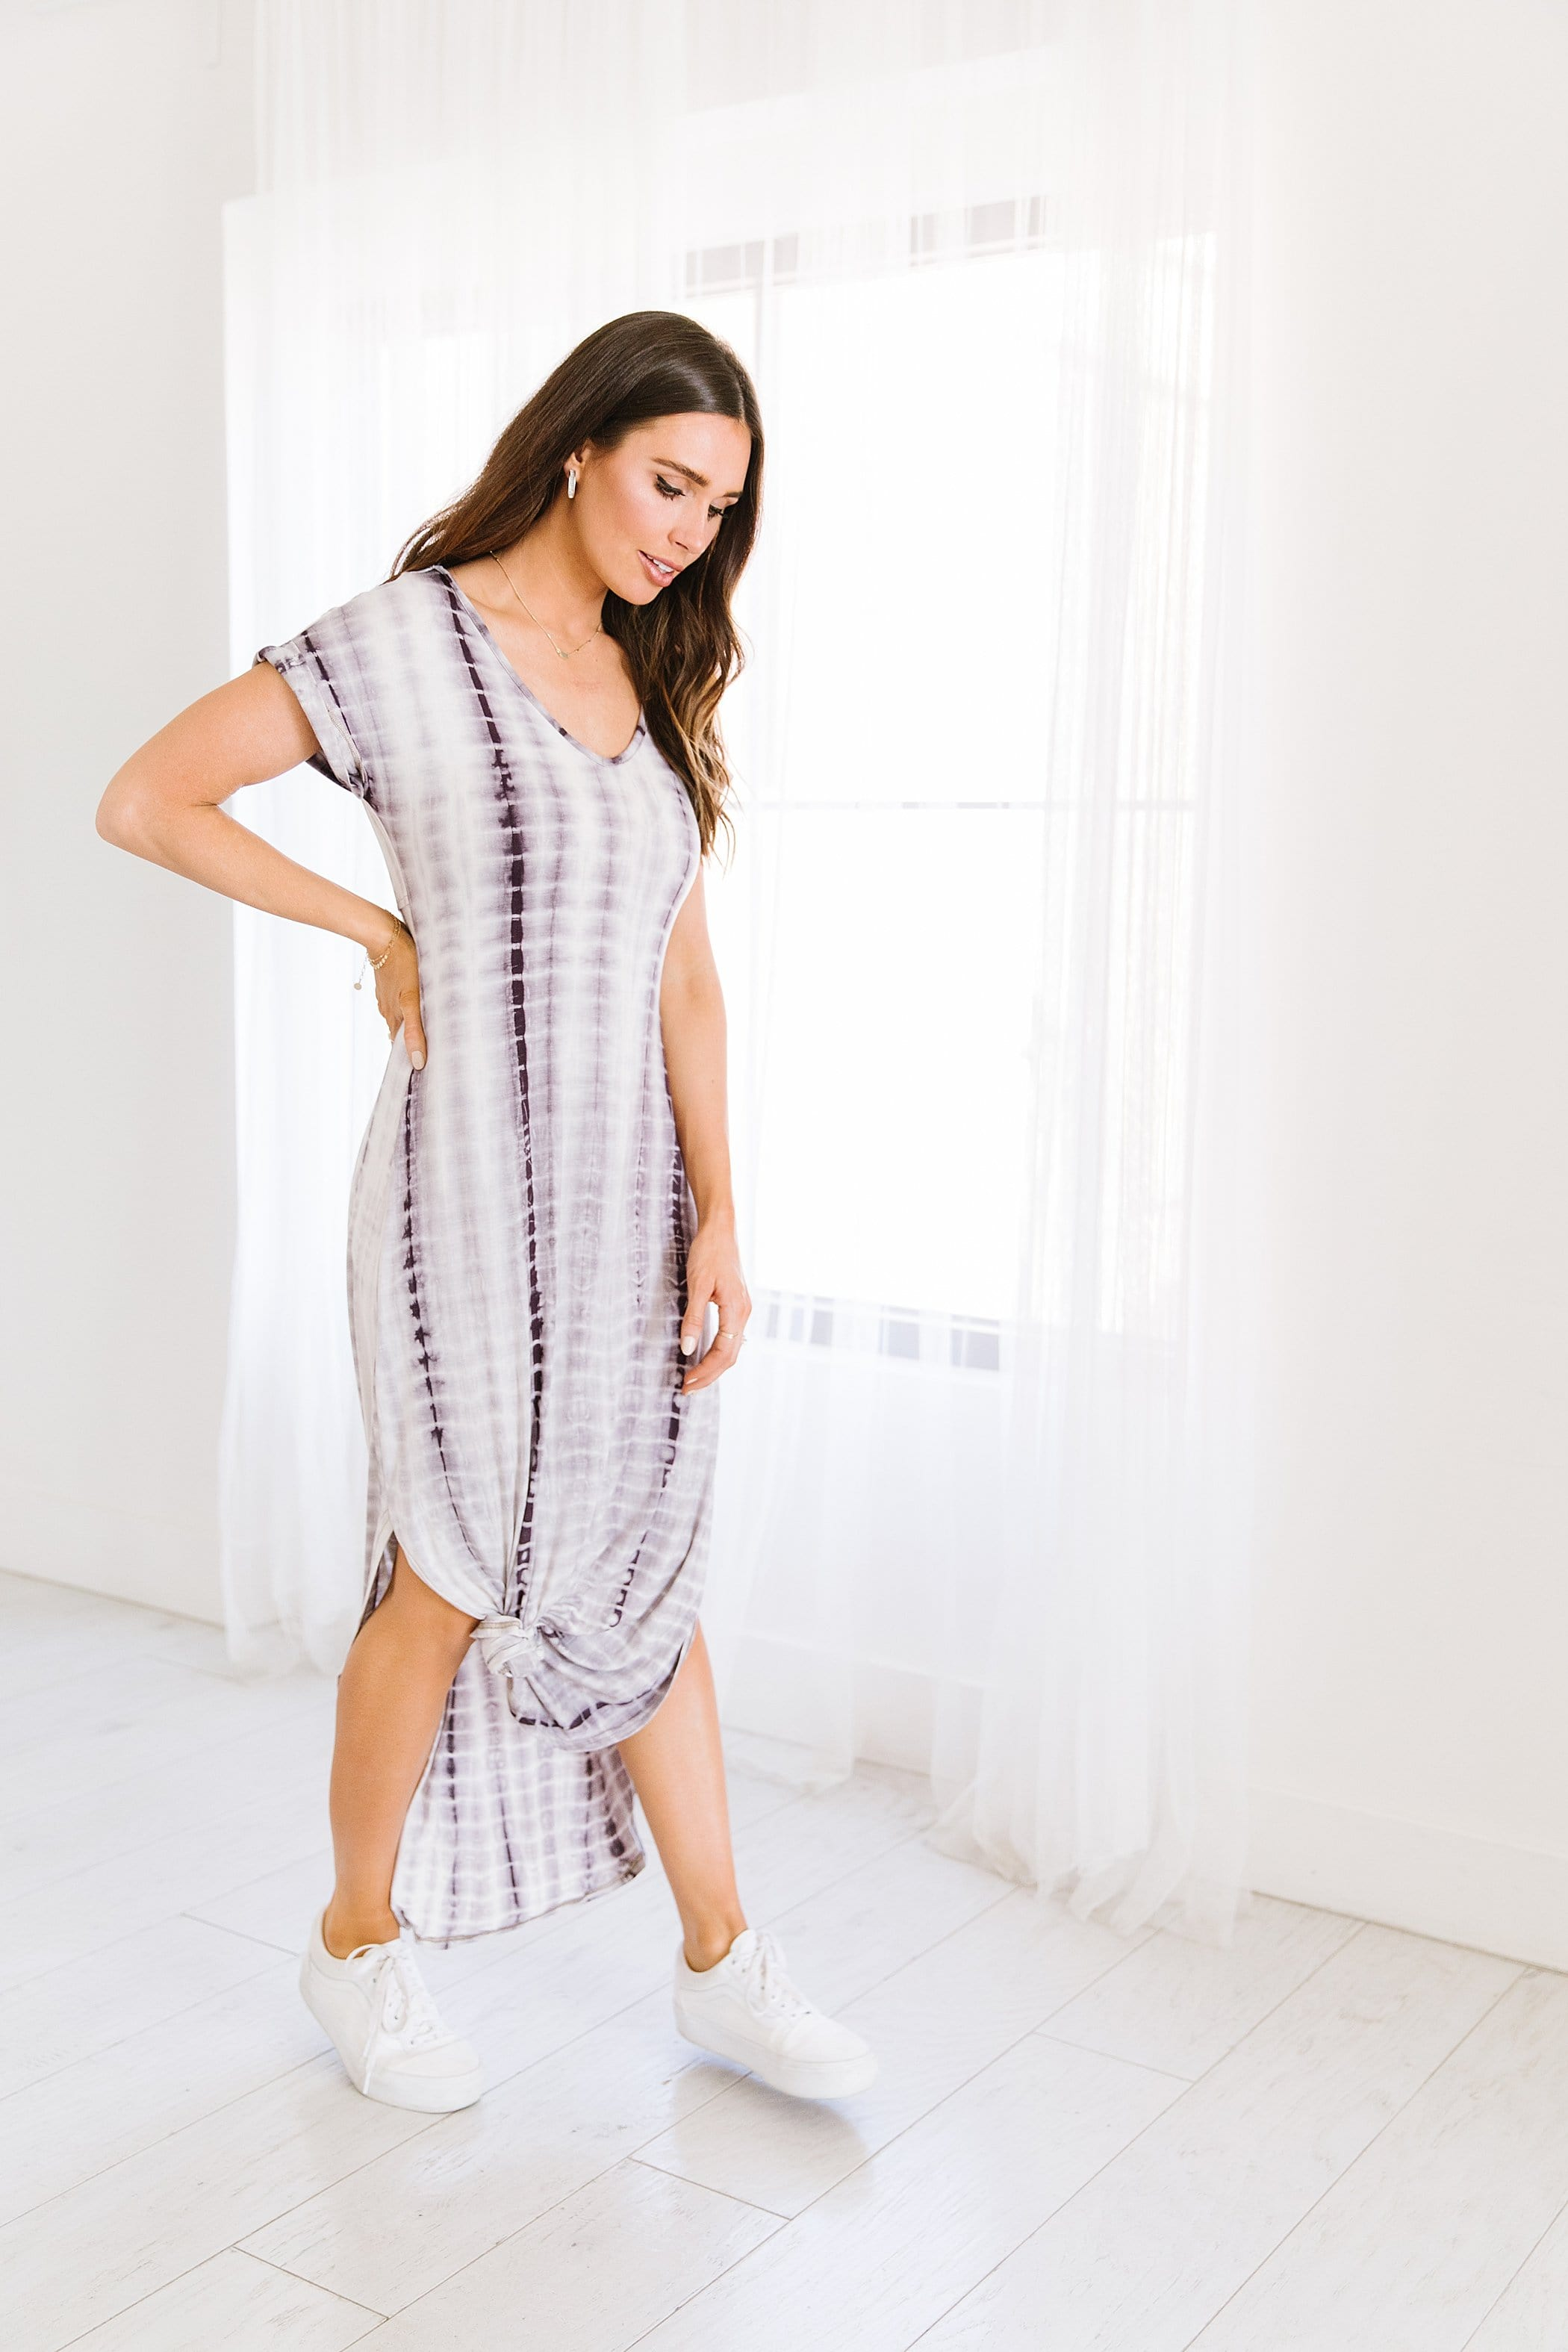 The Brocklyn Tie Dye Dress in Dusty Purple or Olive